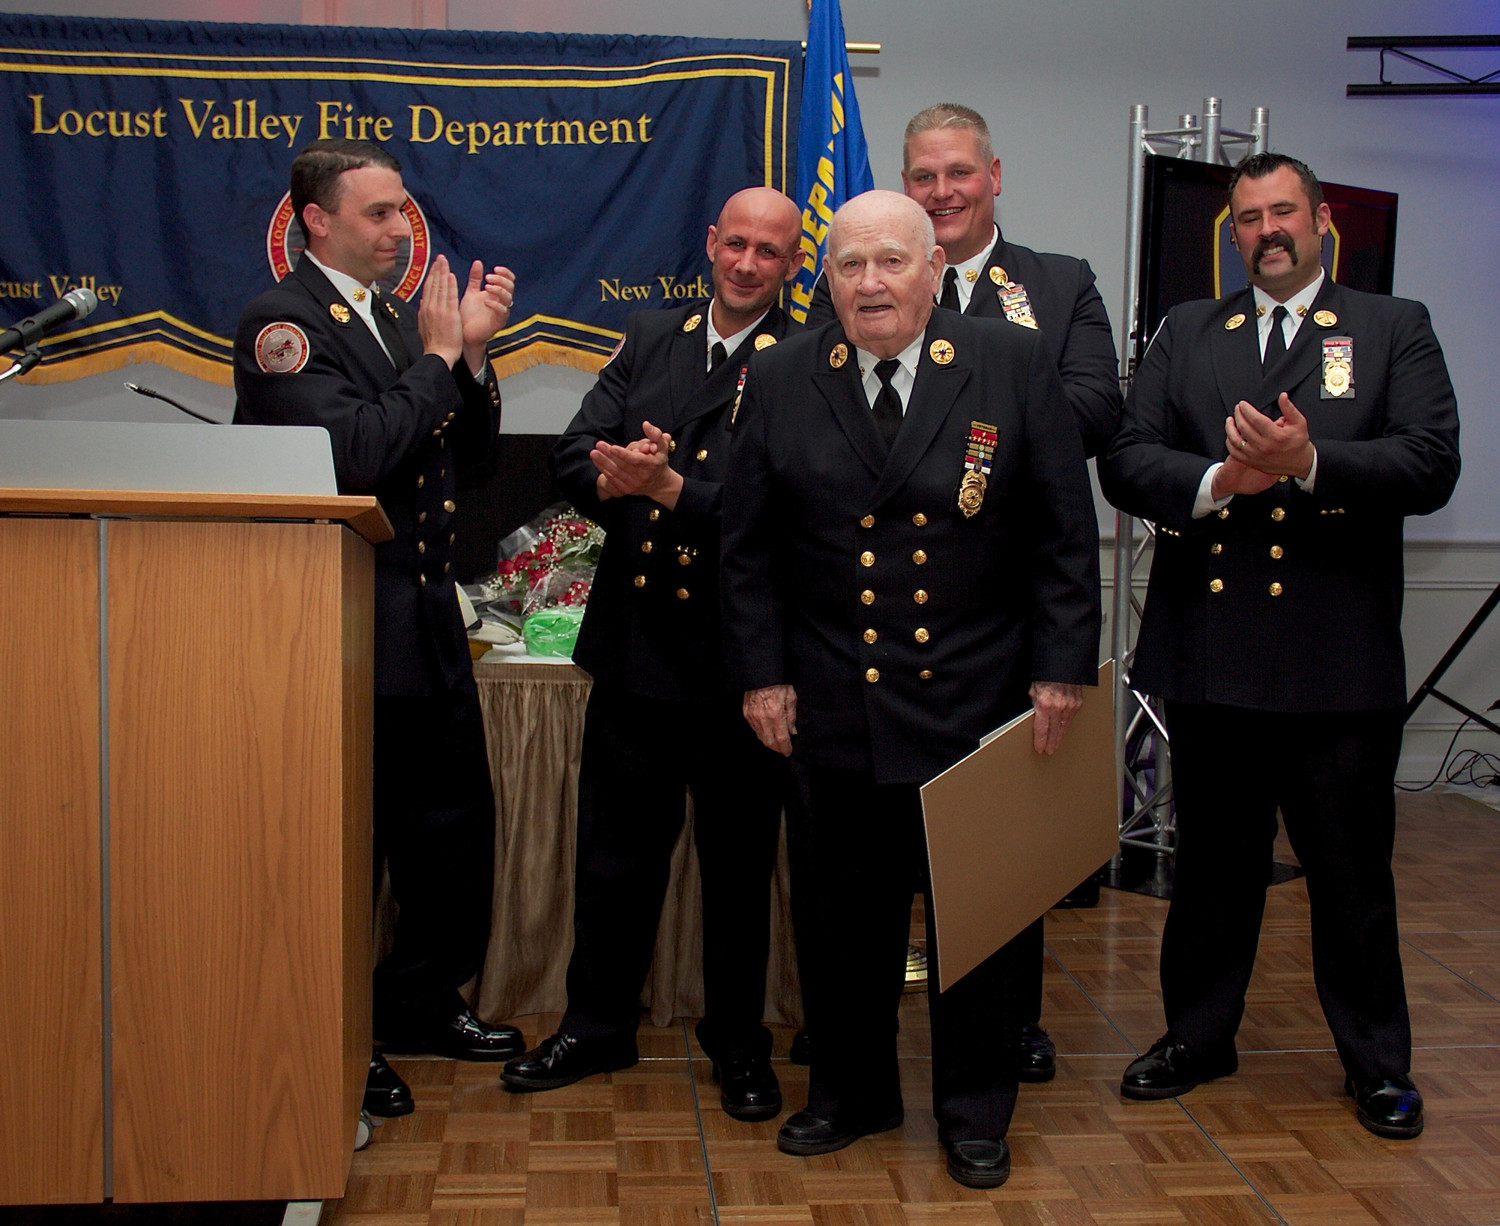 Ex-Chief John Suttie, center at left, was honored for his 60 years of service to the LVFD.